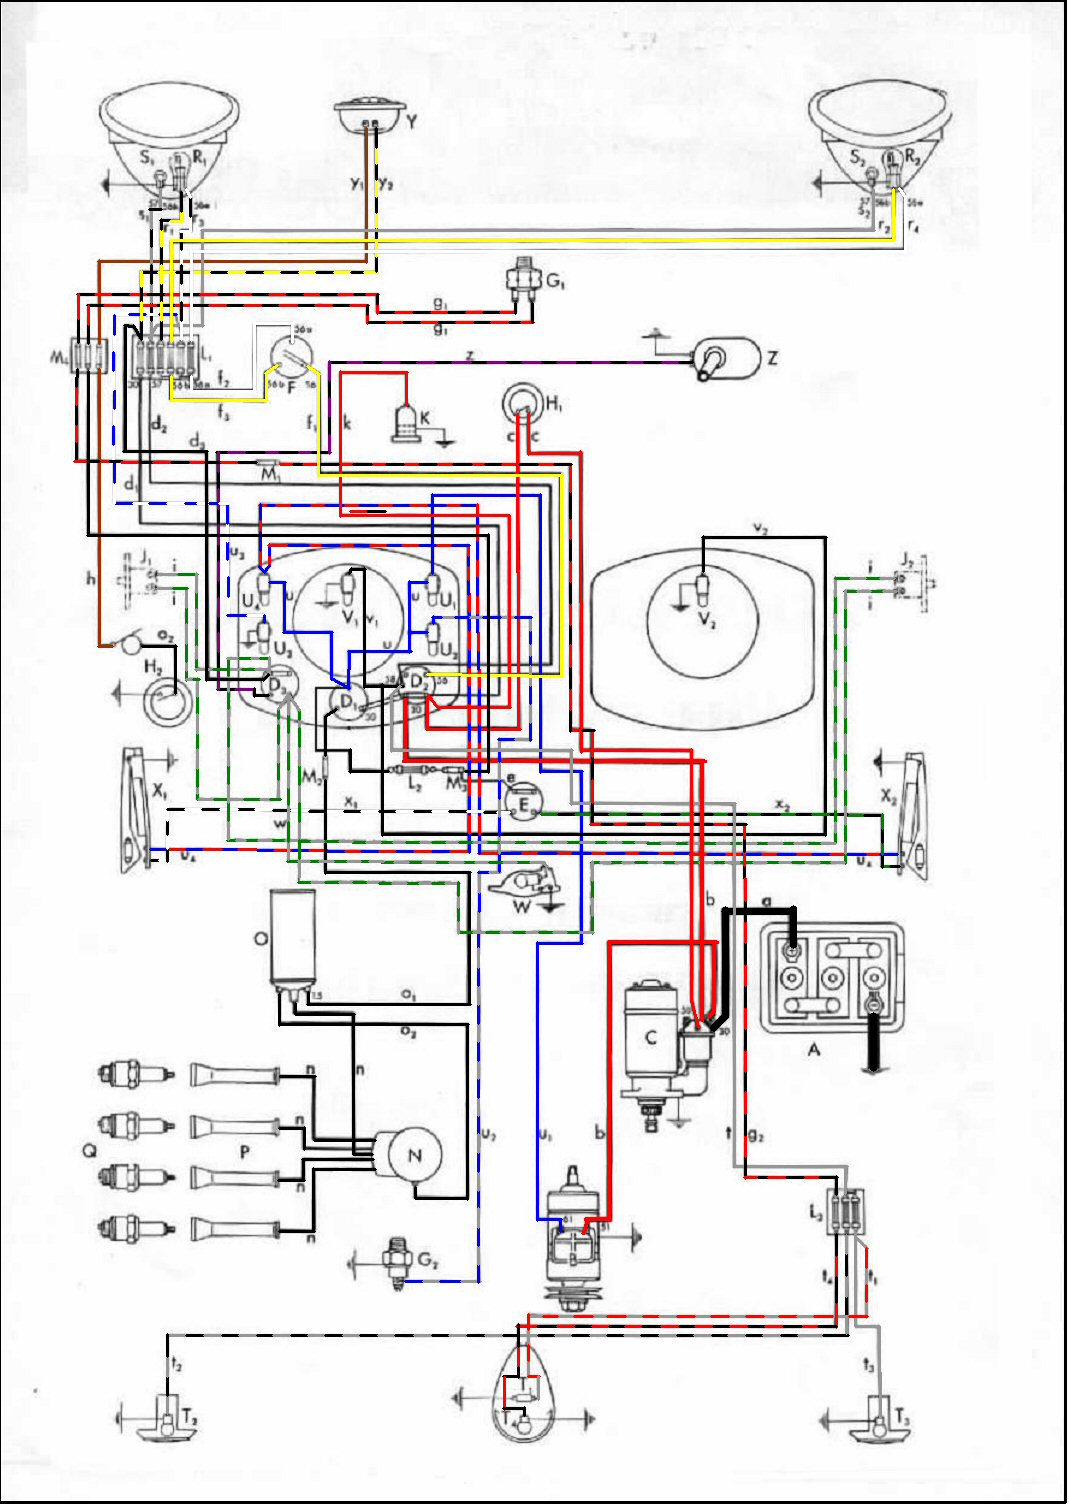 bug_50 thesamba com type 1 wiring diagrams 1971 volkswagen super beetle wiring diagram at panicattacktreatment.co